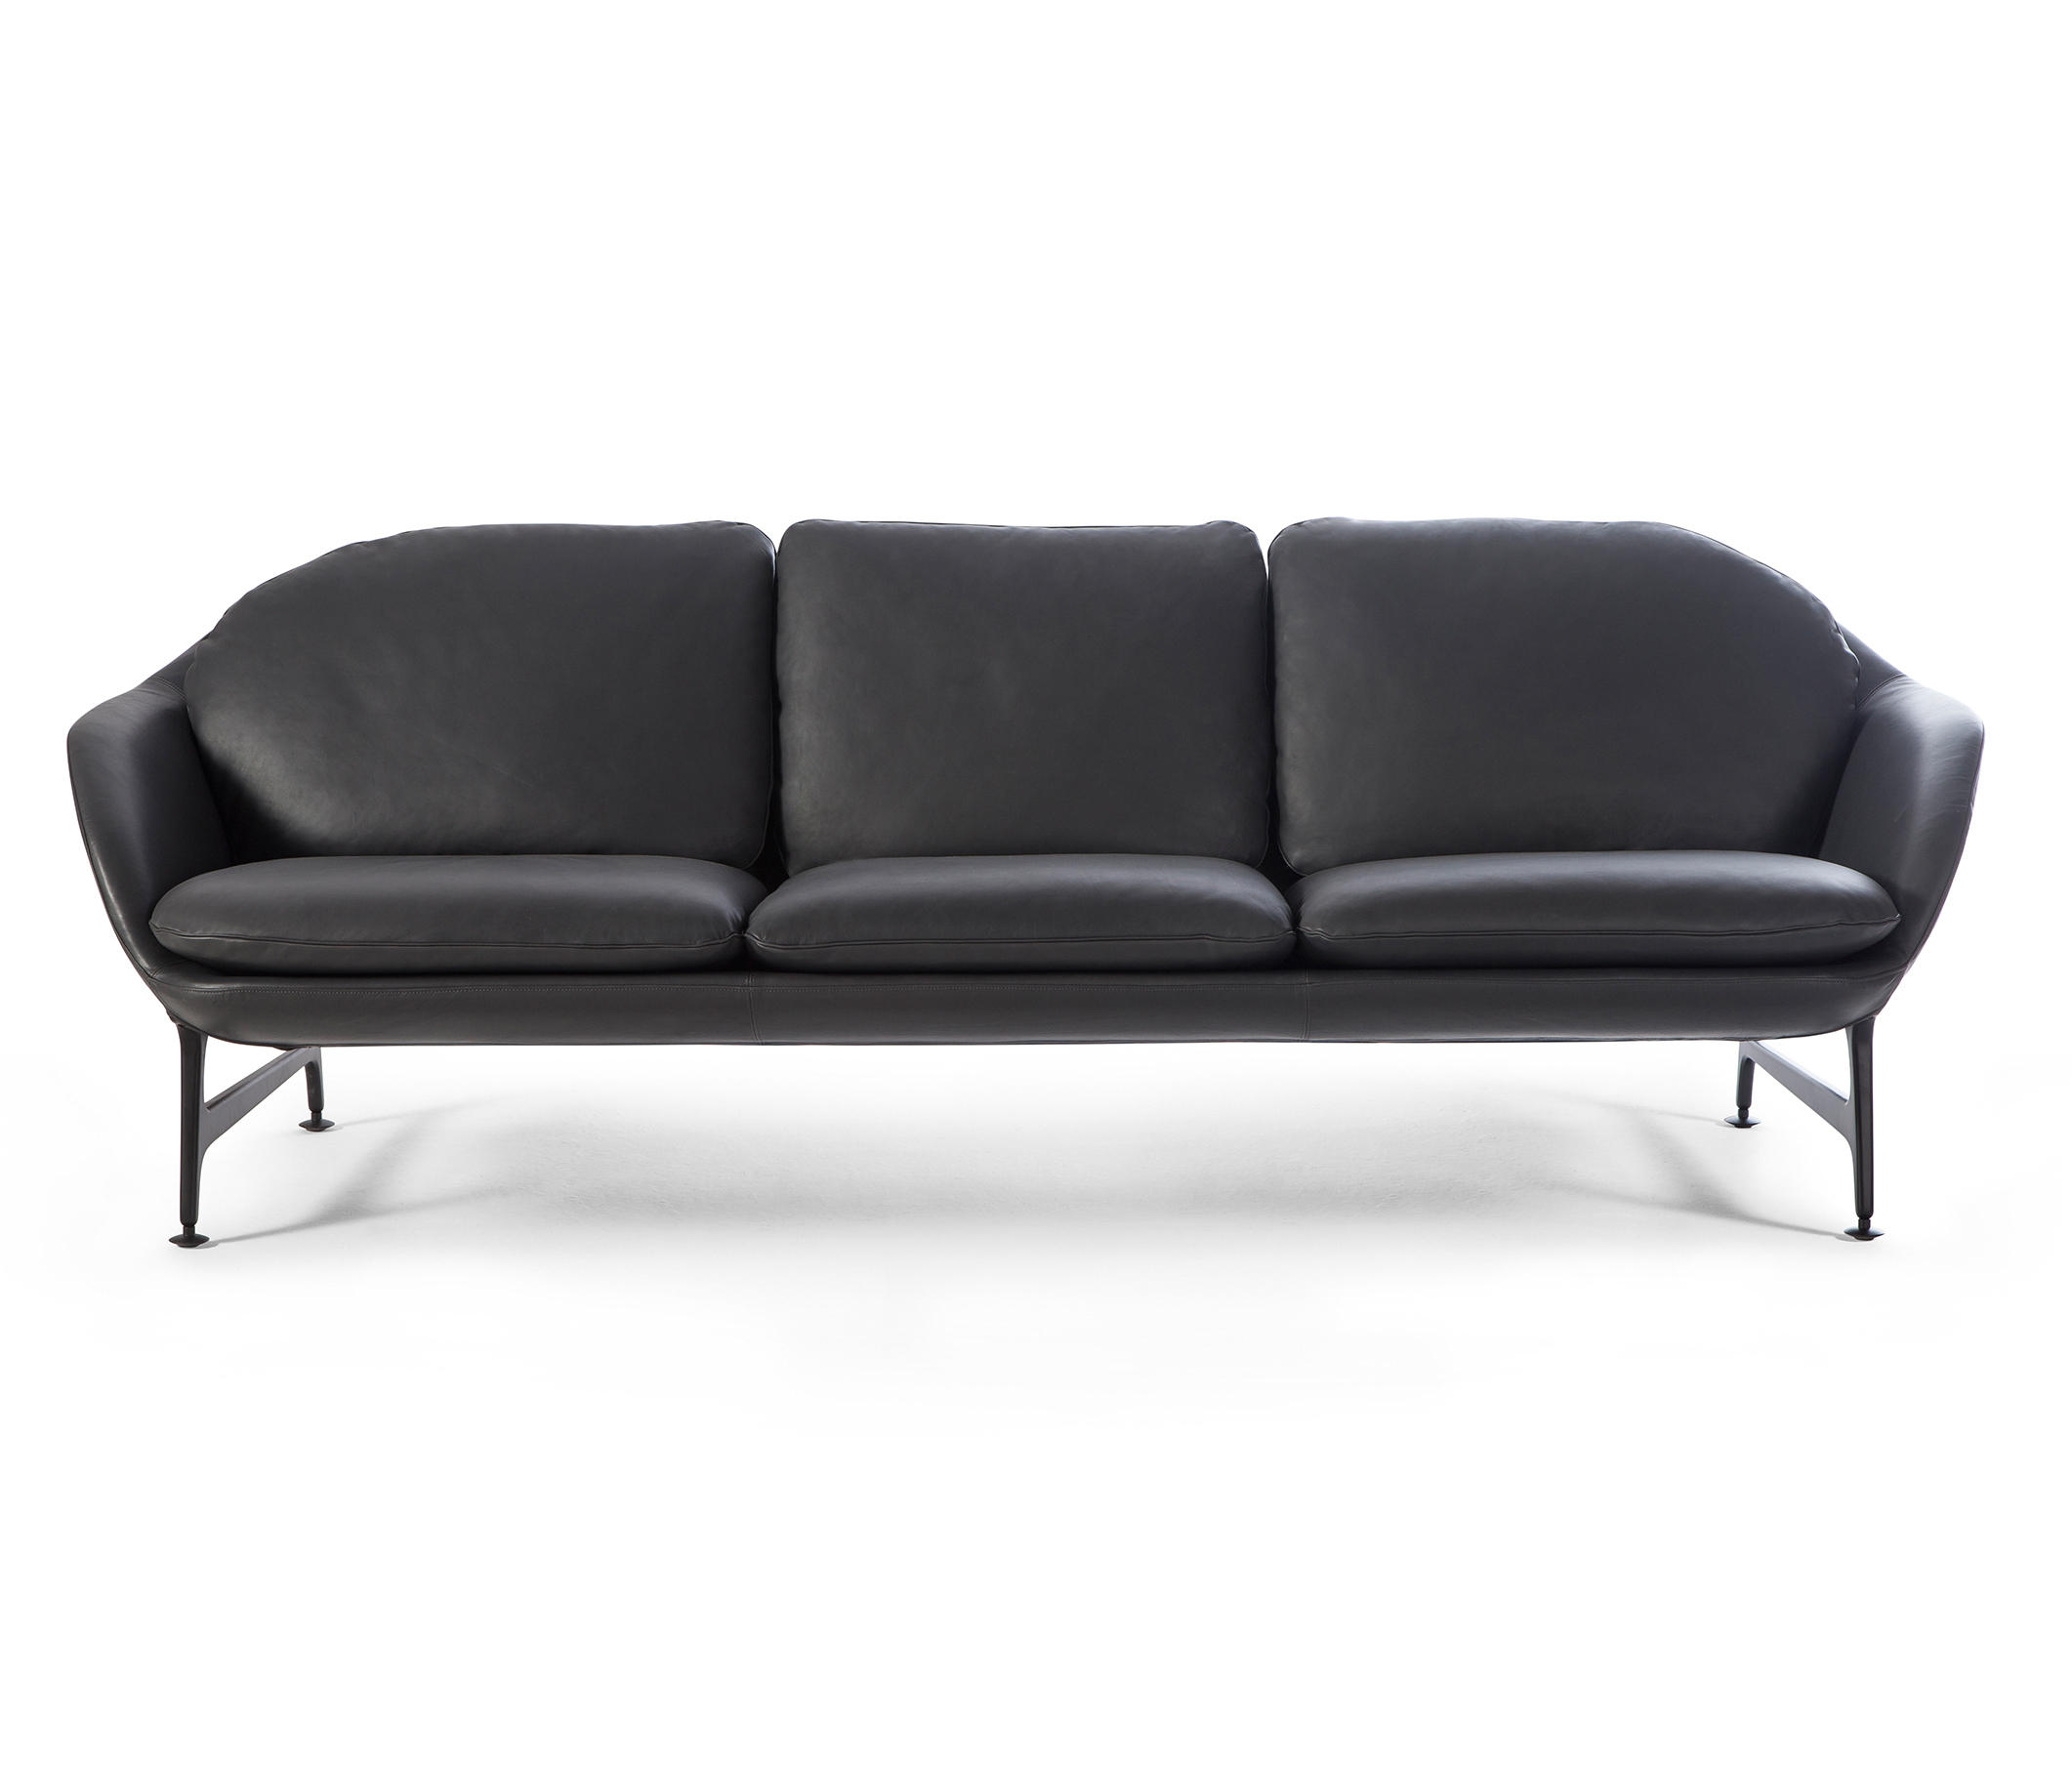 399 Vico 3 Seater Sofa Leather By Cina Sofas